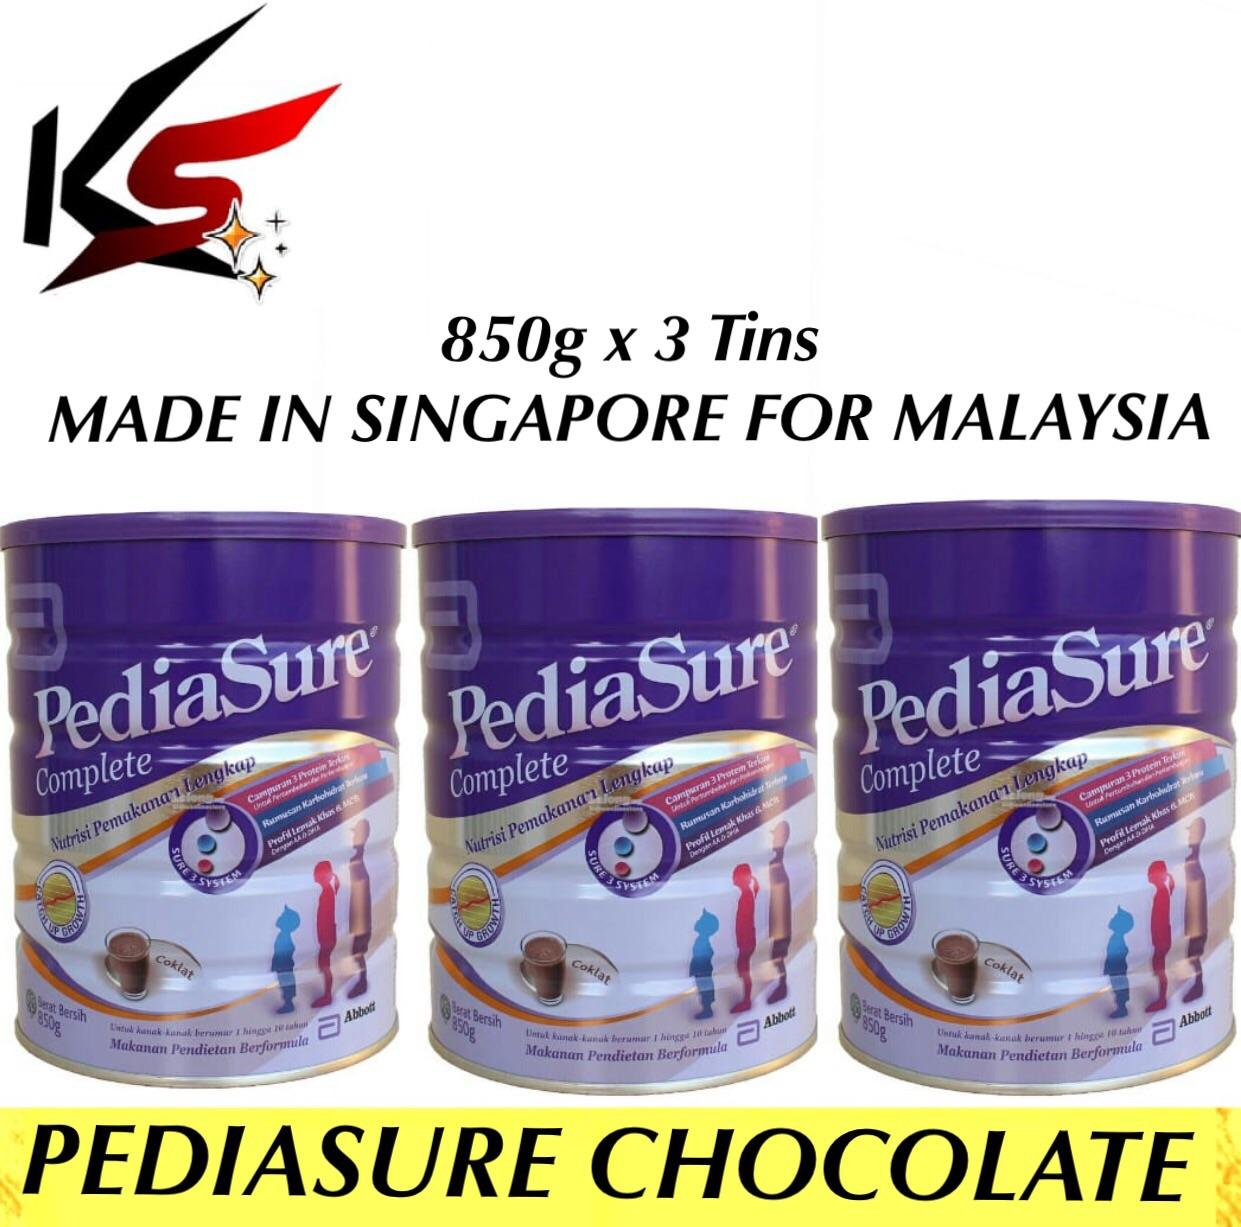 Pediasure Chocolate Milk Powder 850g x 3 Tins Made In Singapore For Malaysia